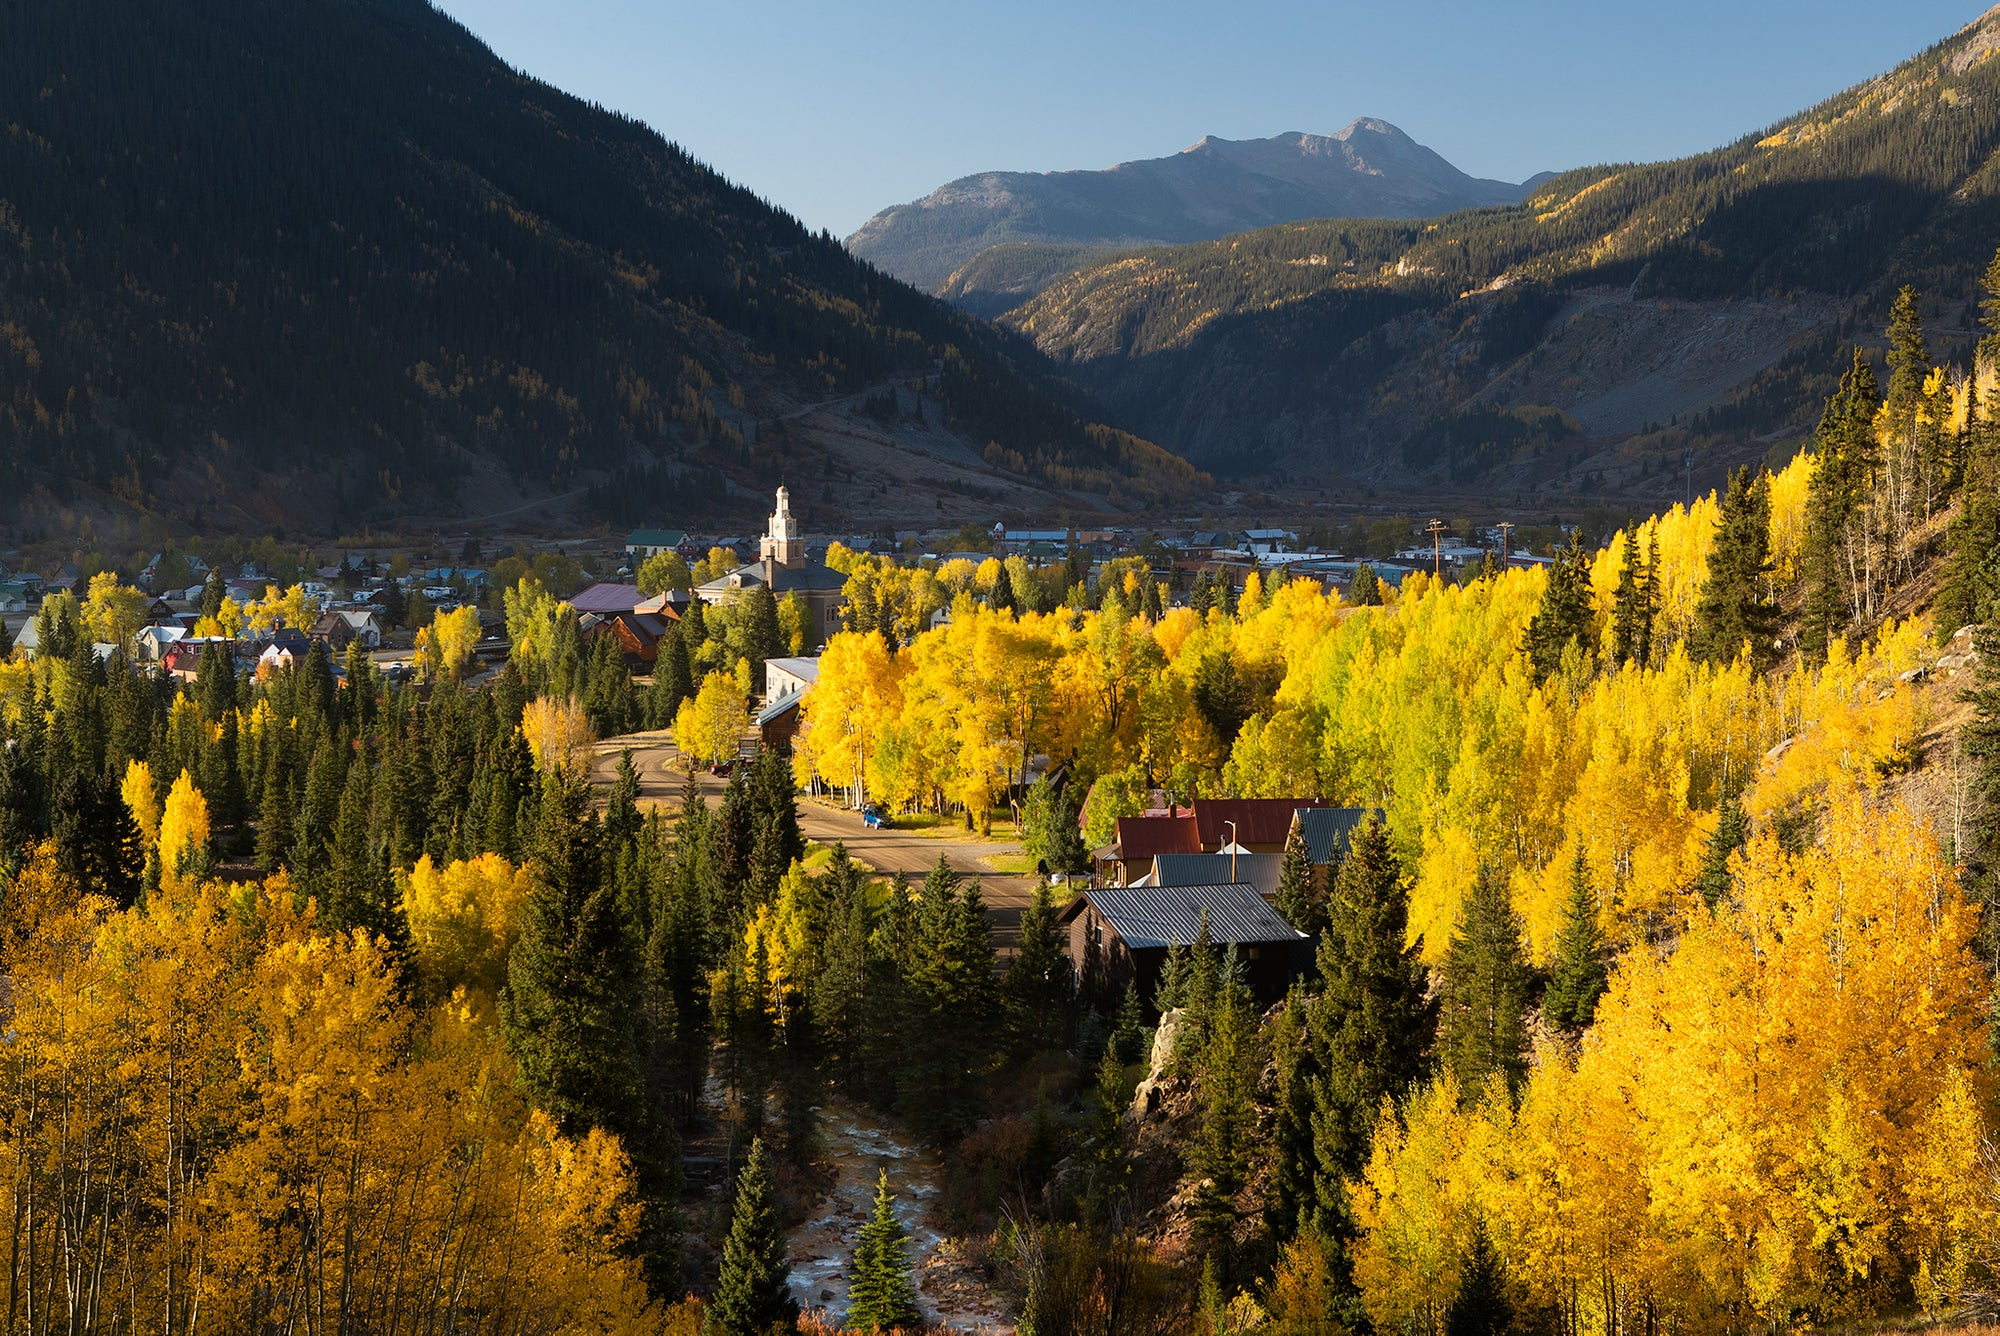 MOUNTAIN TOWN ASPENS